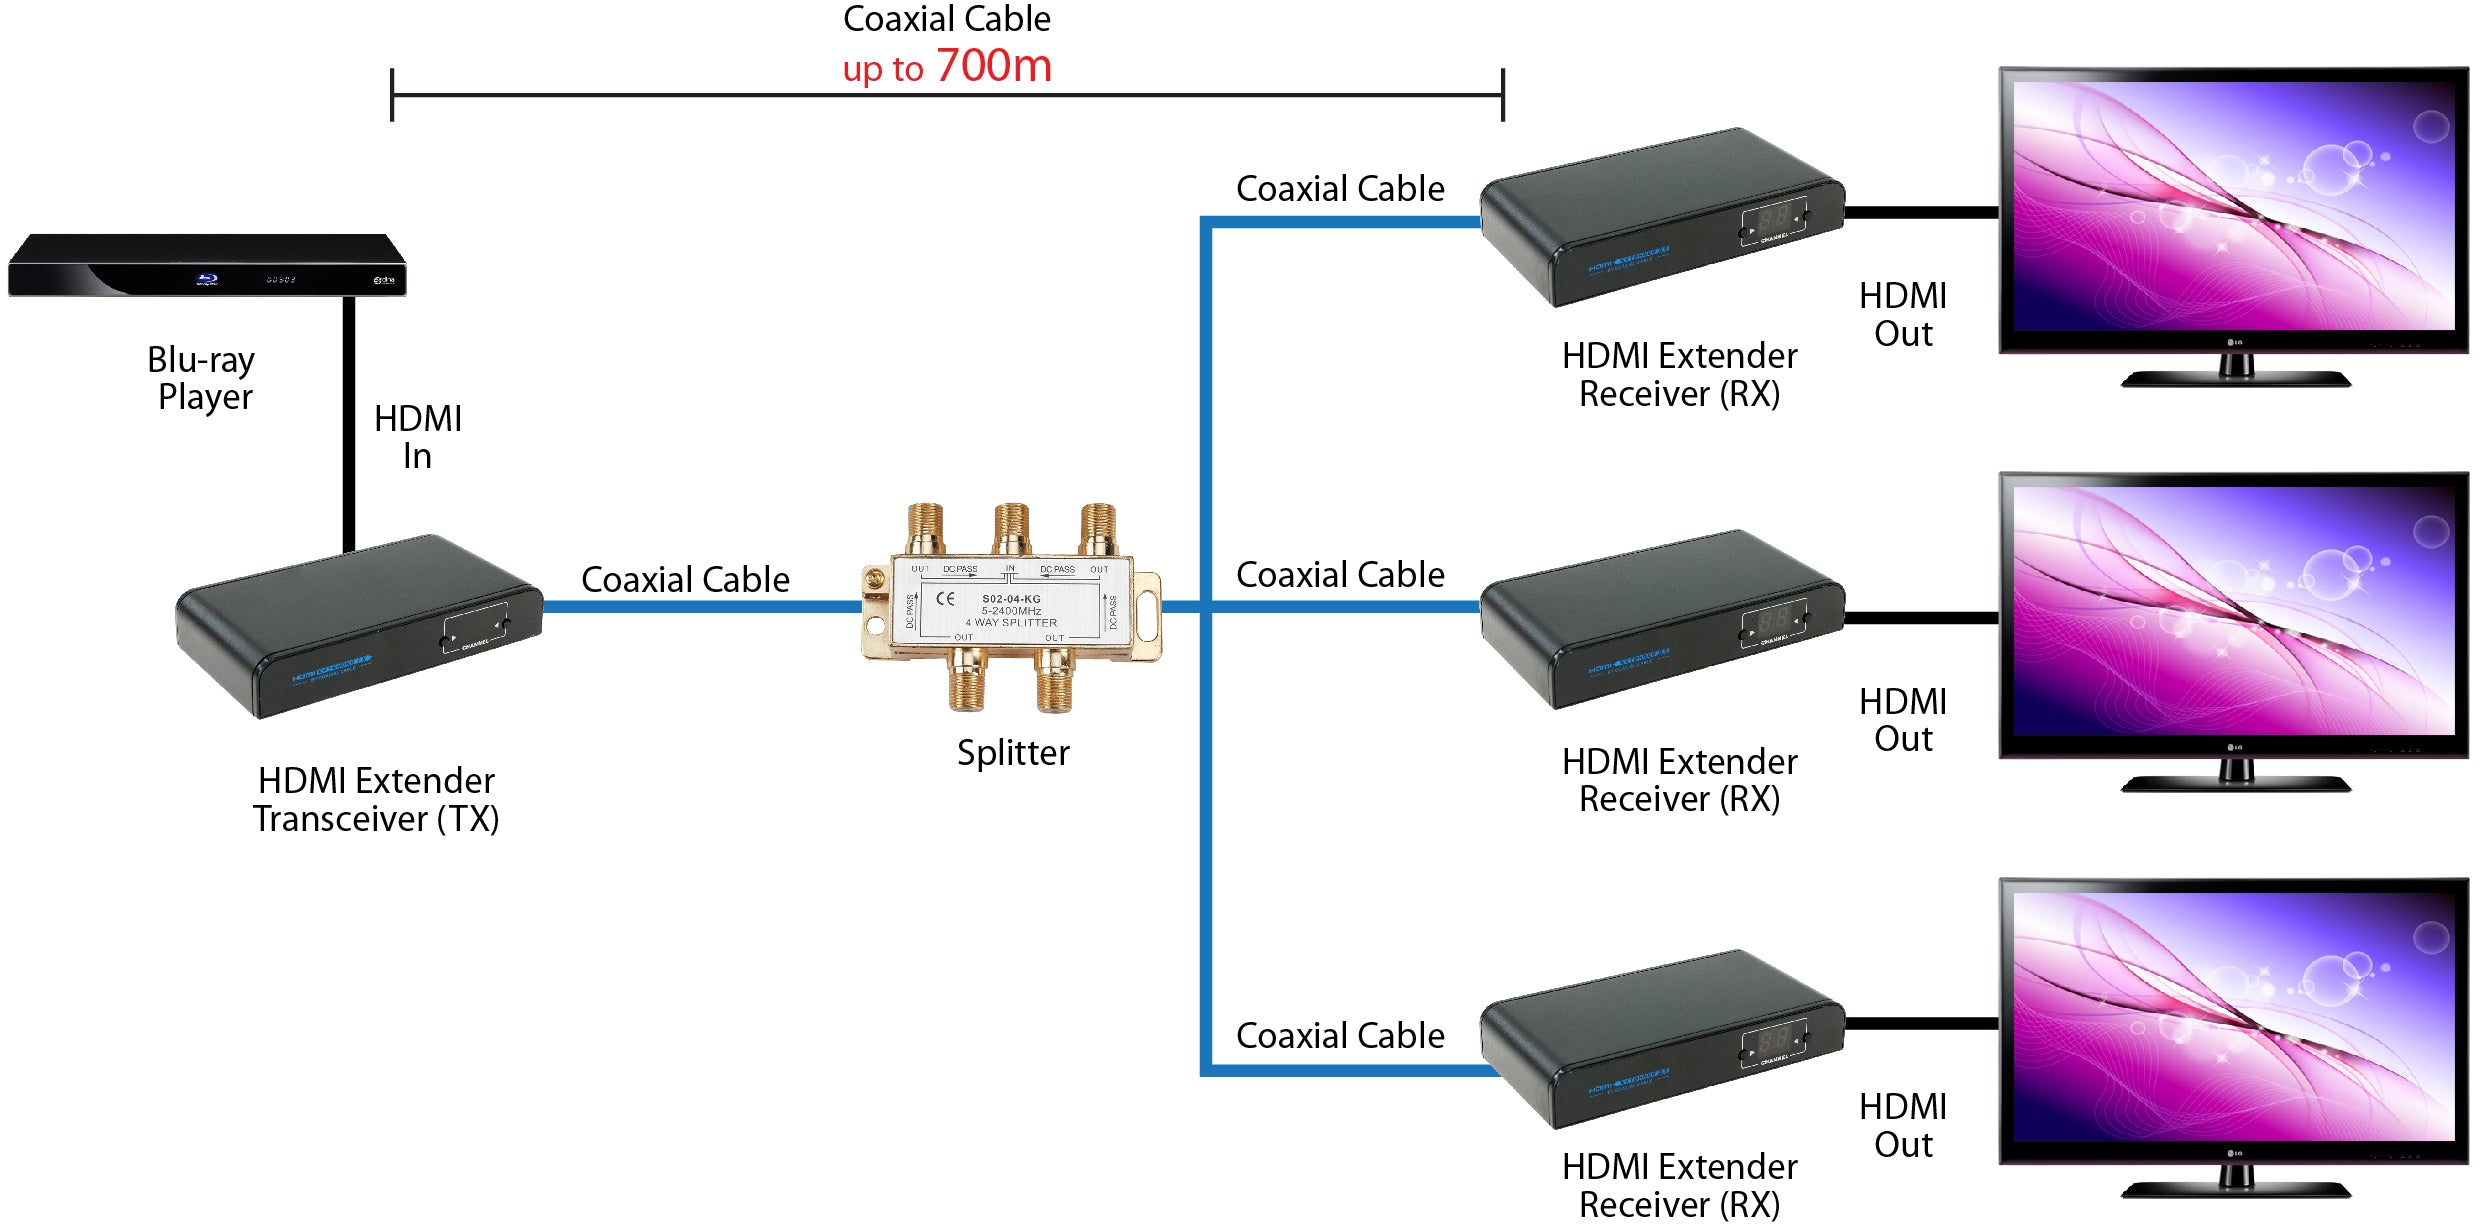 HDMI Extender Over Coaxial Cable (Receiver only for HDMI-COX-700M)